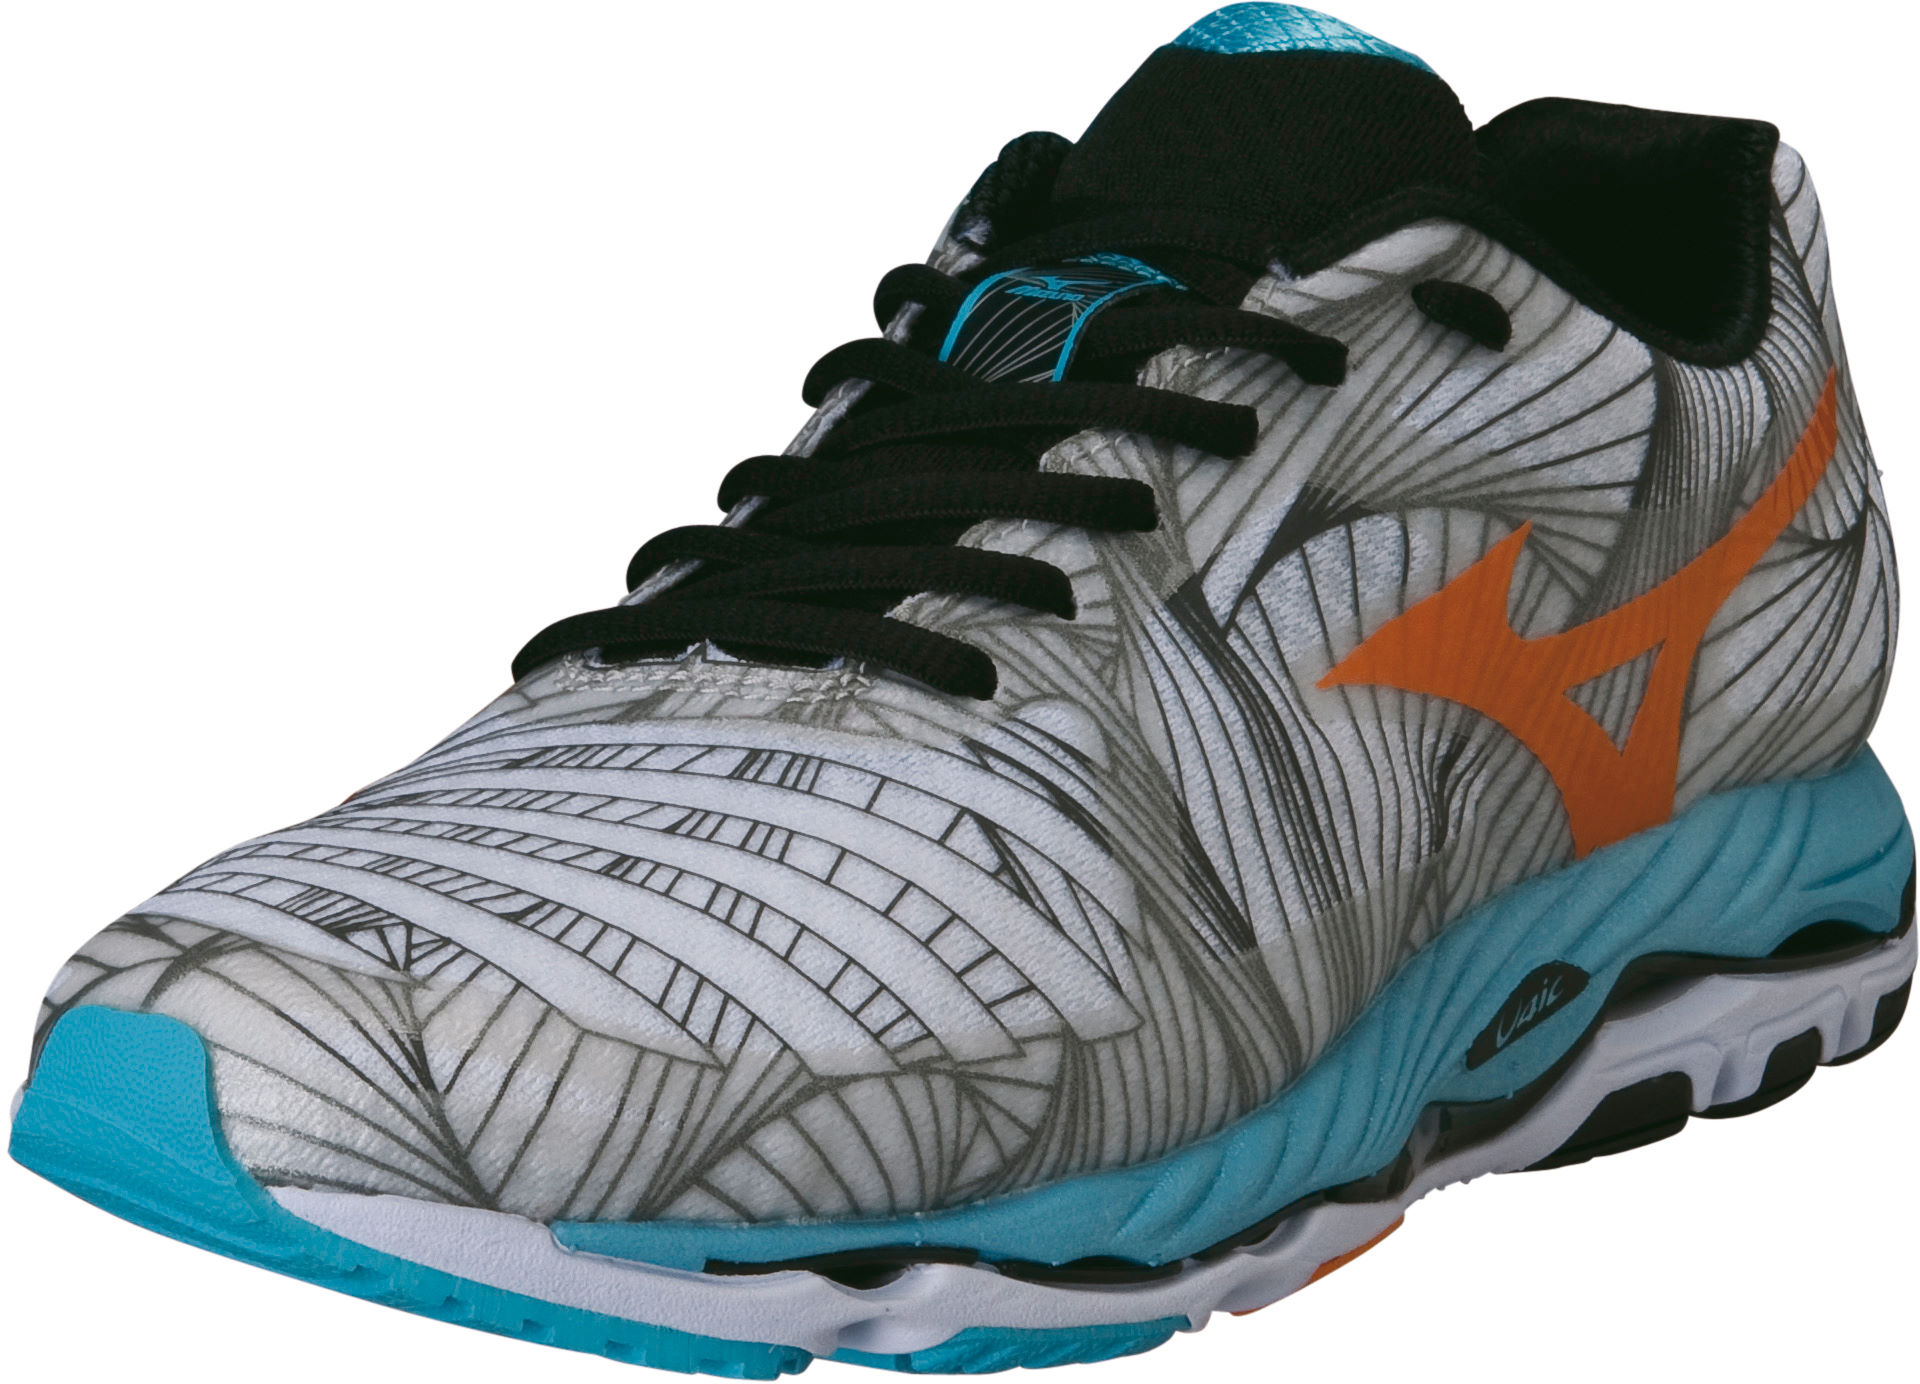 zoom Mizuno Women's Wave Paradox Shoes - SS14